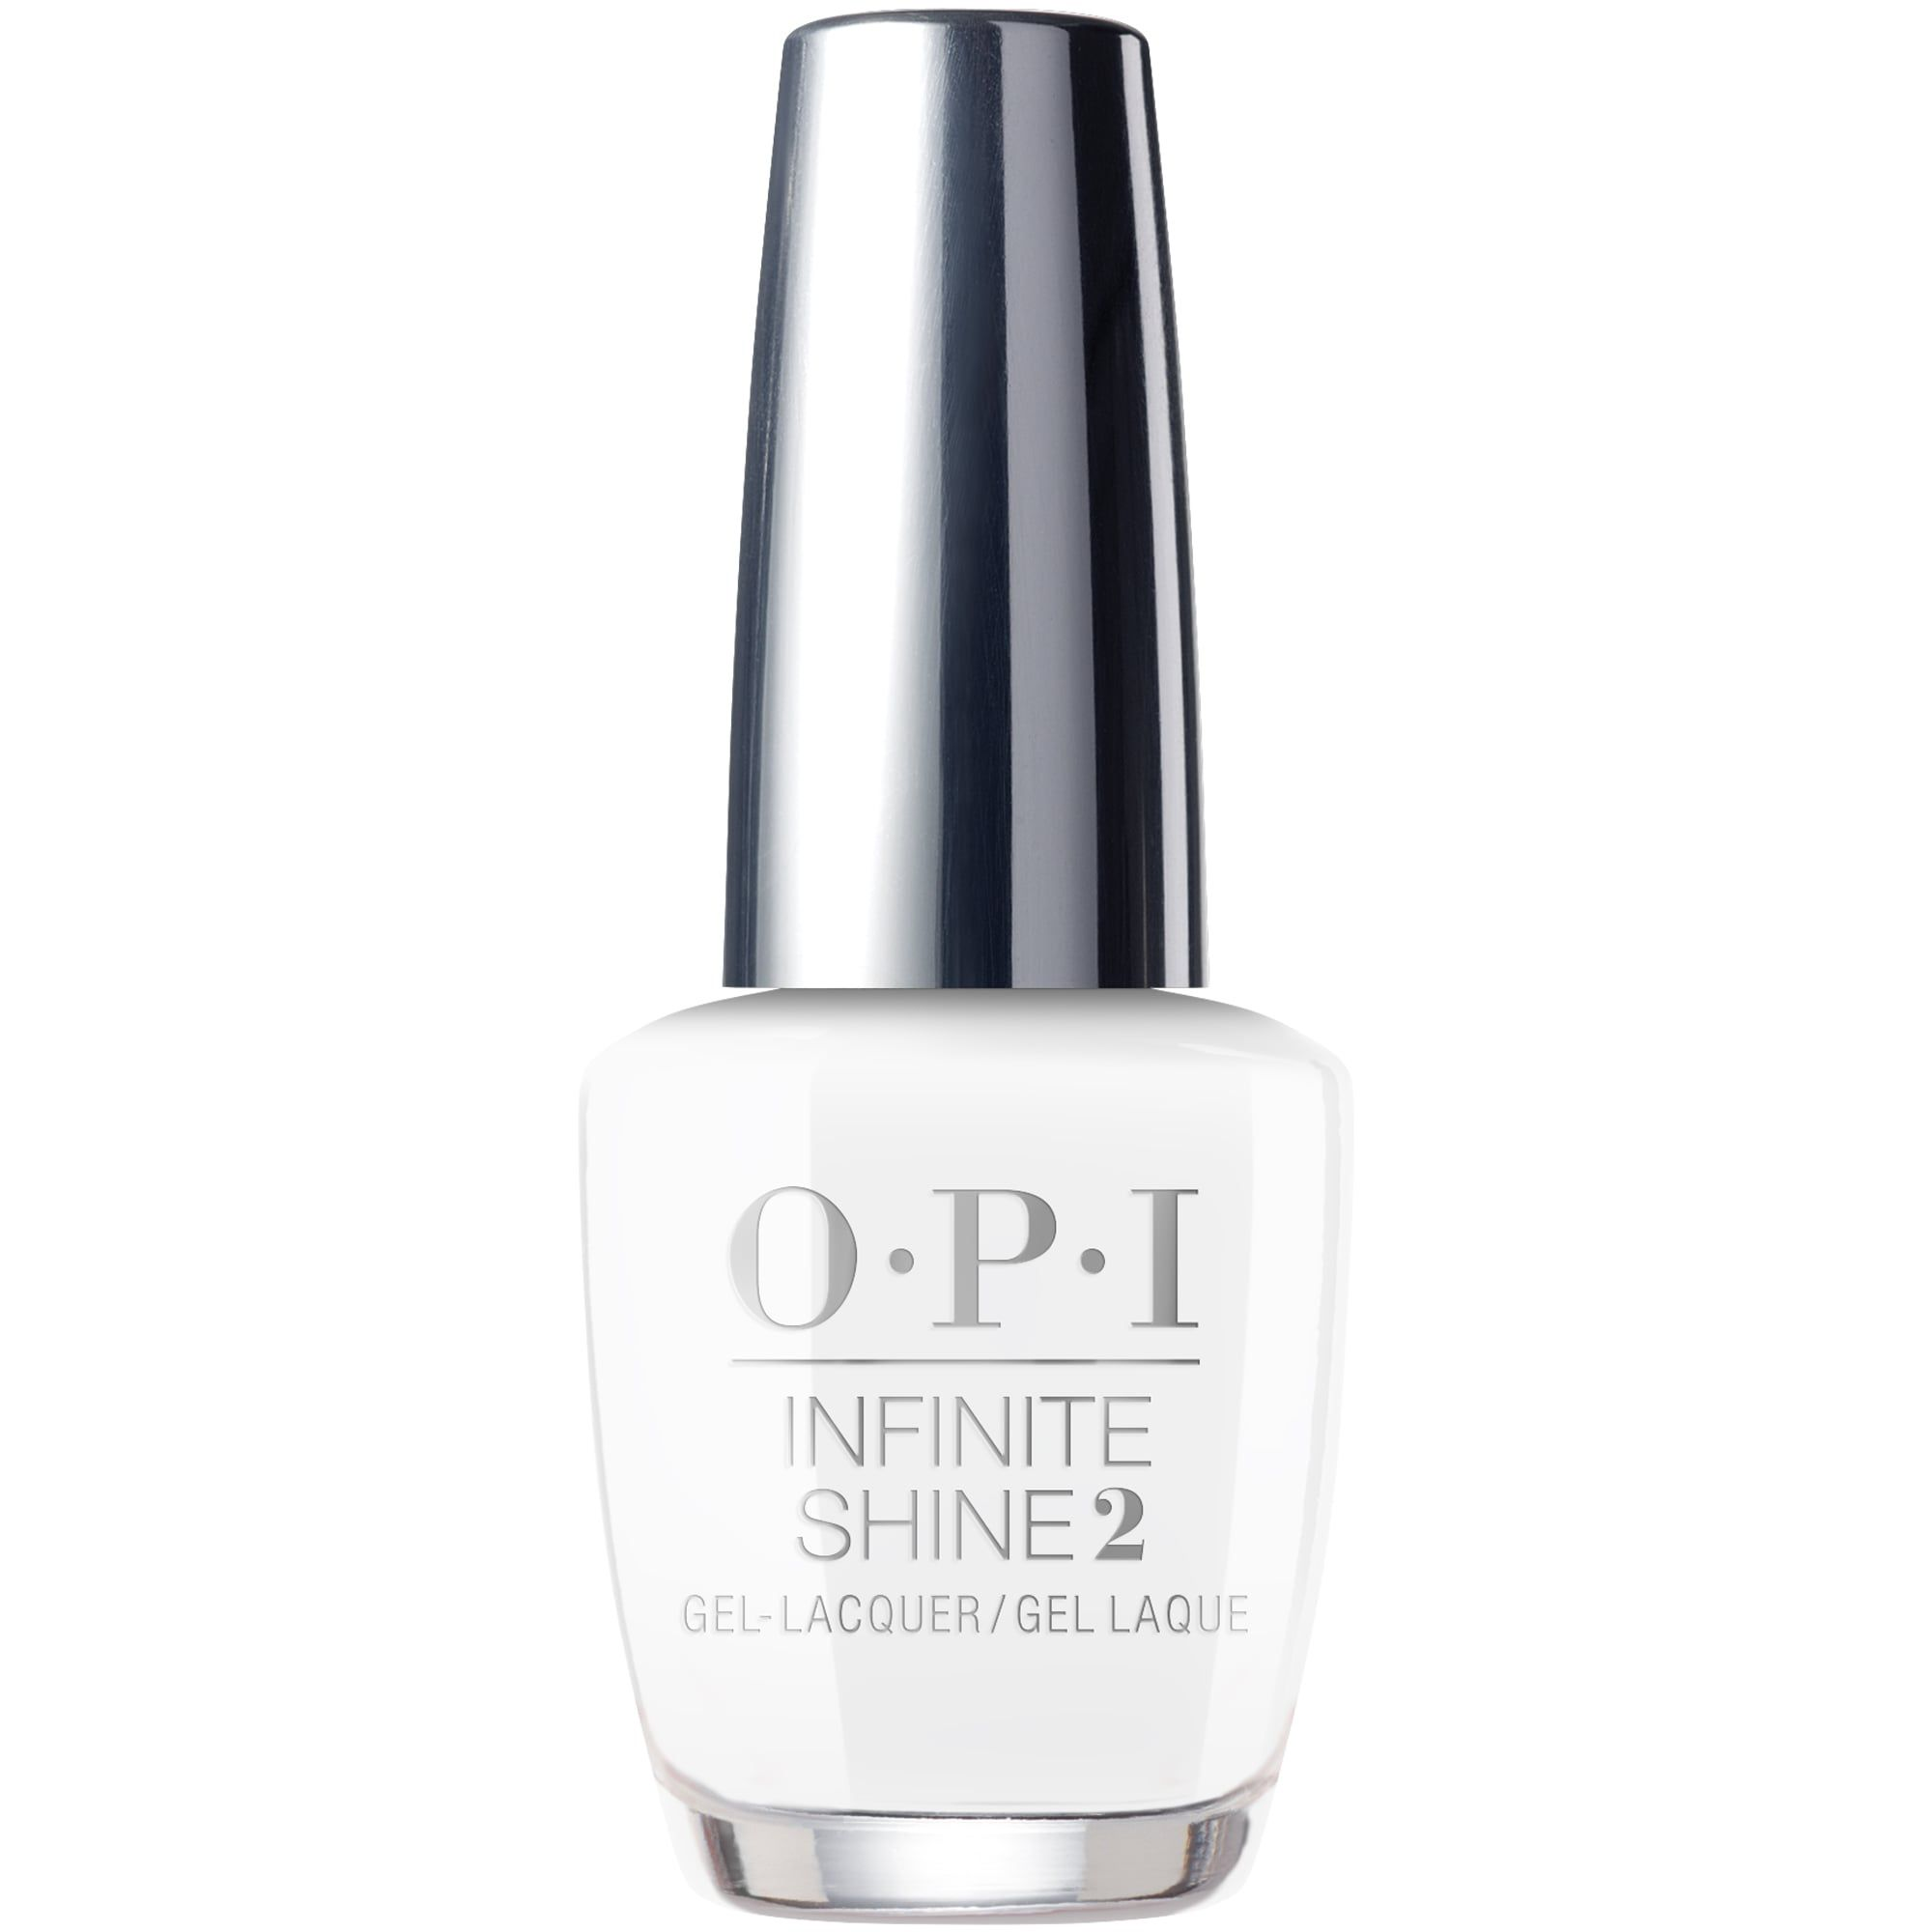 OPI Infinite Shine 2 Nail Polish in Alpine Snow